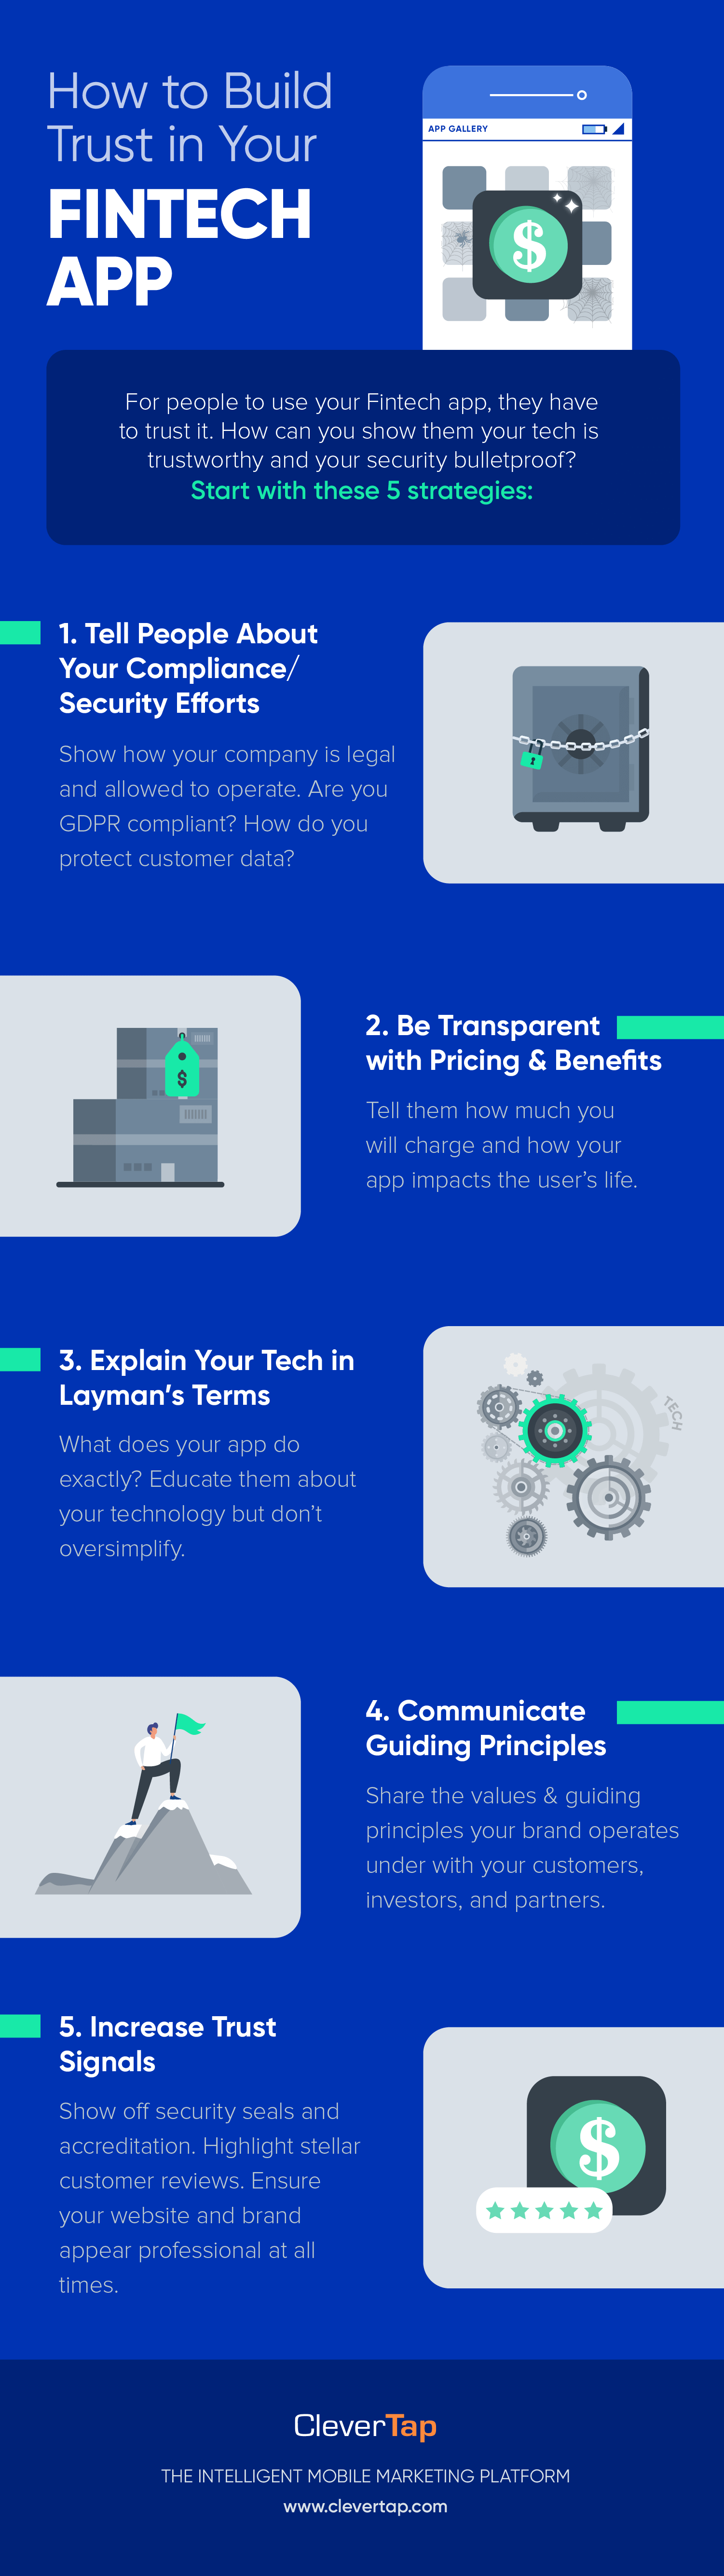 Infographic - How to Build Trust in your Fintech App